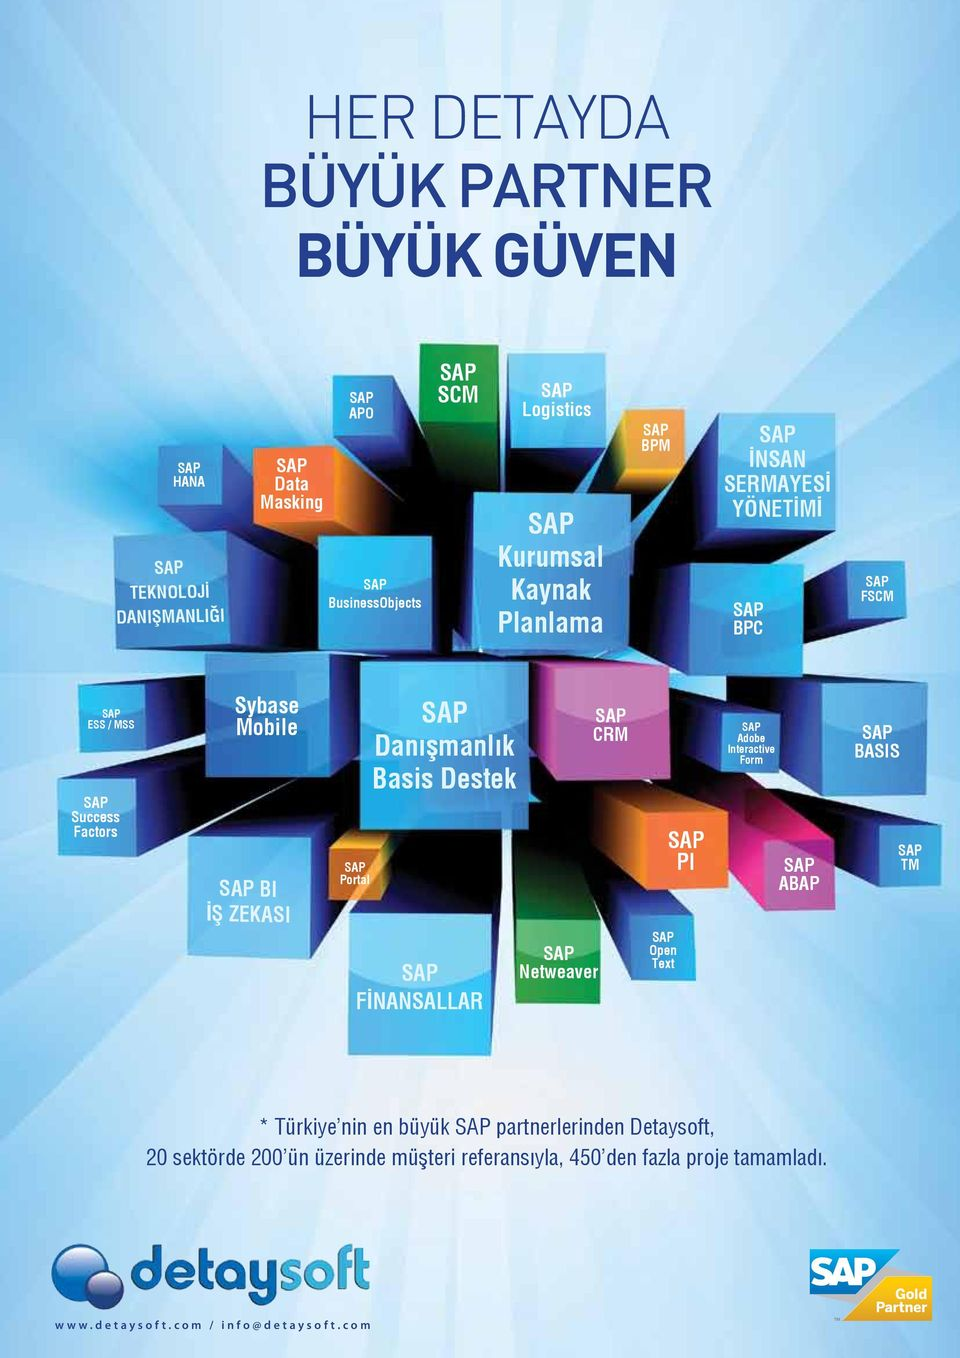 Basis Destek FİNANSALLAR Netweaver CRM Open Text PI Adobe Interactive Form ABAP BASIS TM * Türkiye nin en büyük